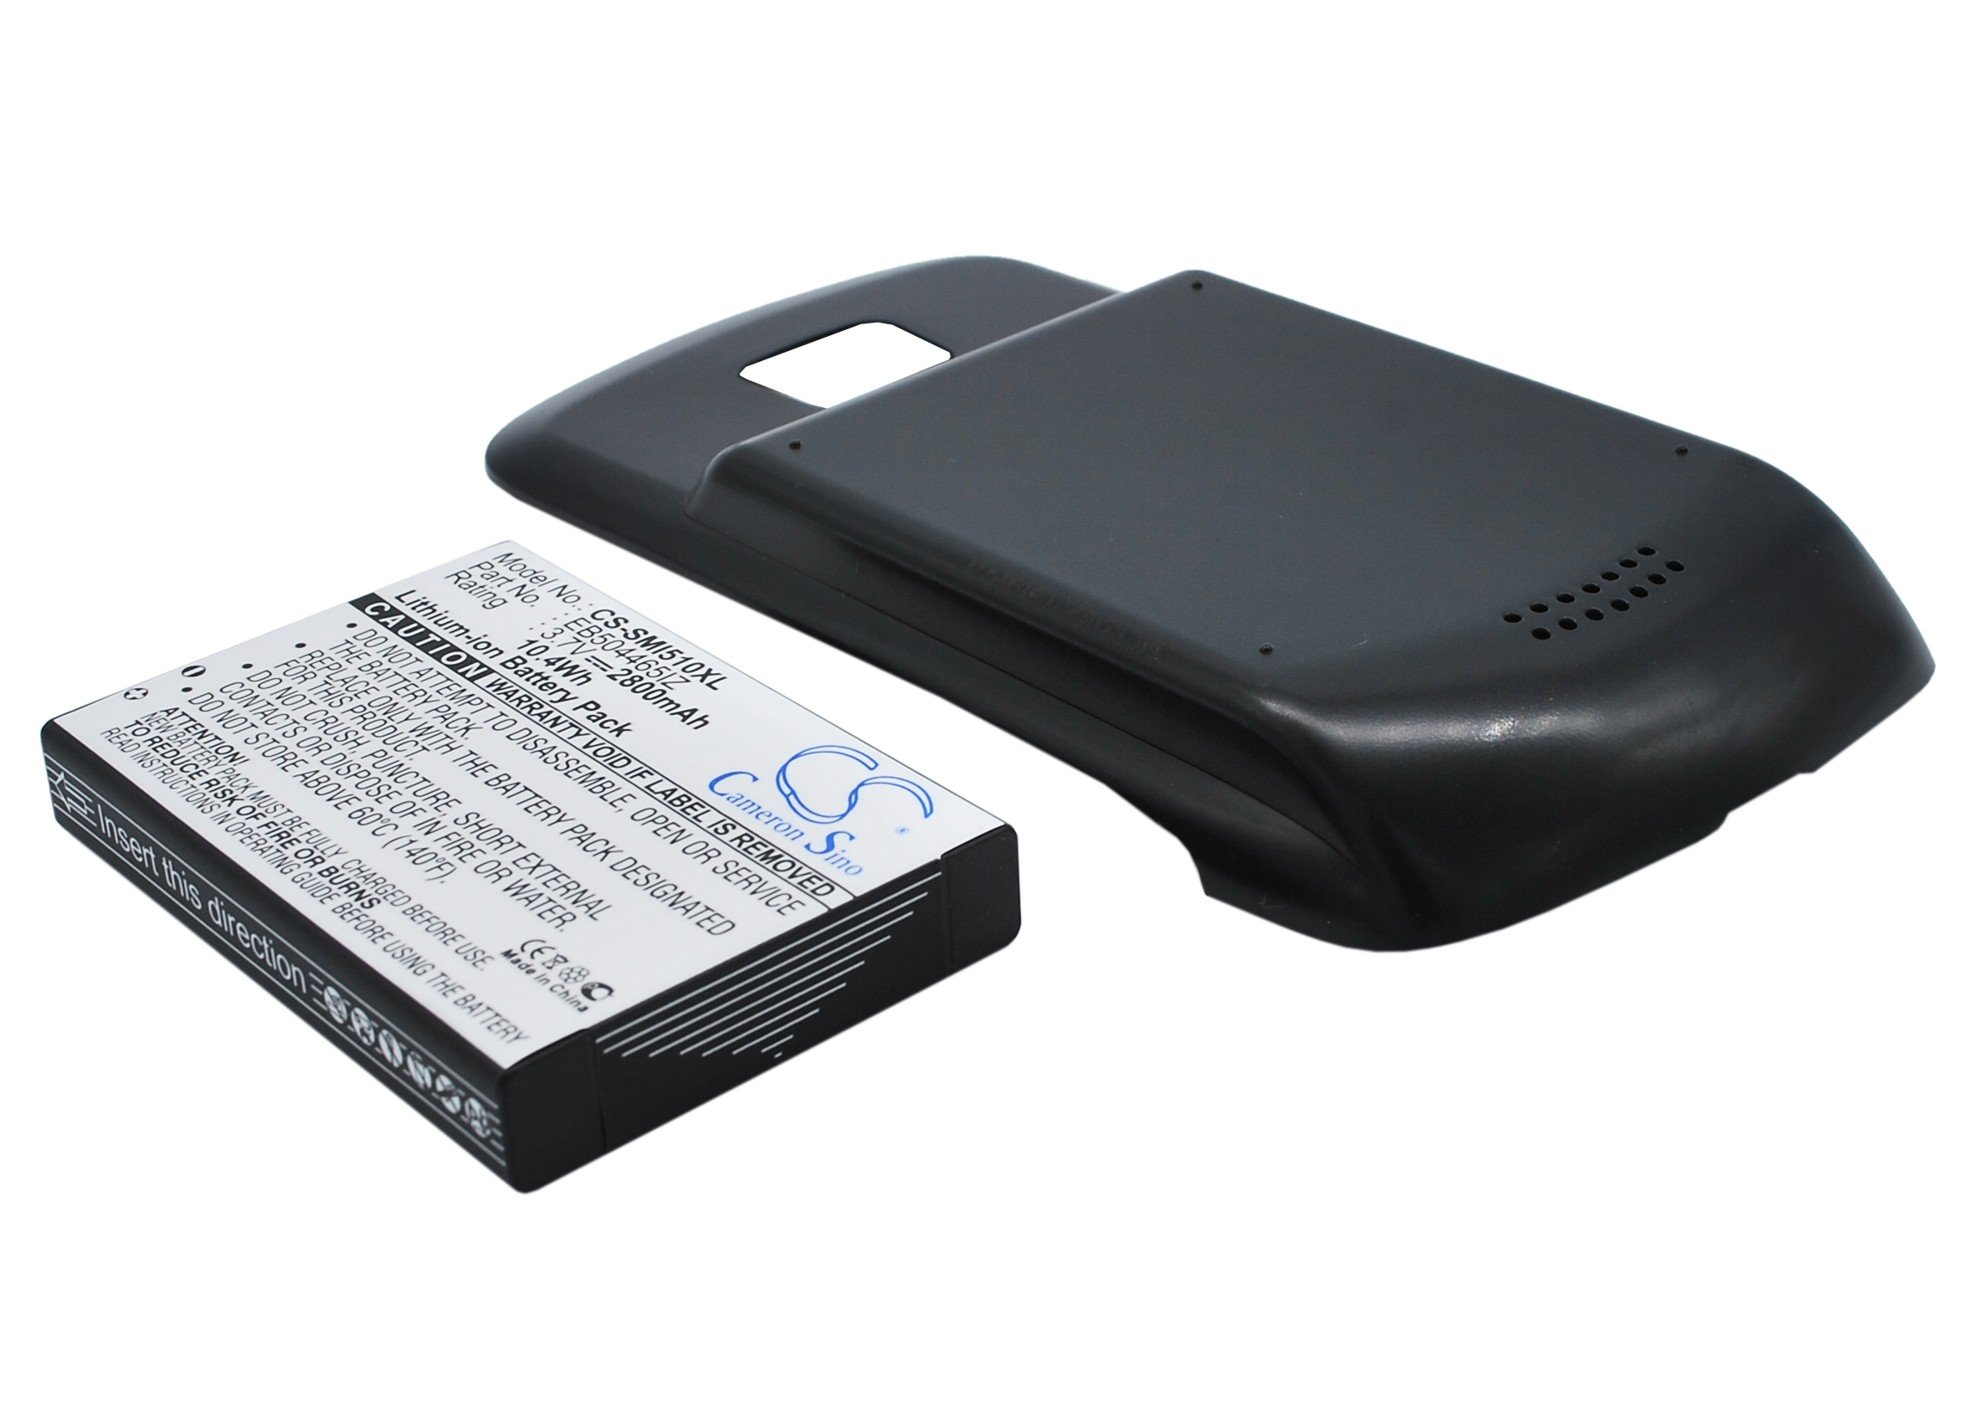 Bateria Celular DigiTech Factory Extended para Samsung Droid Charge SCH i510 2800 mAh Includes Door Cover